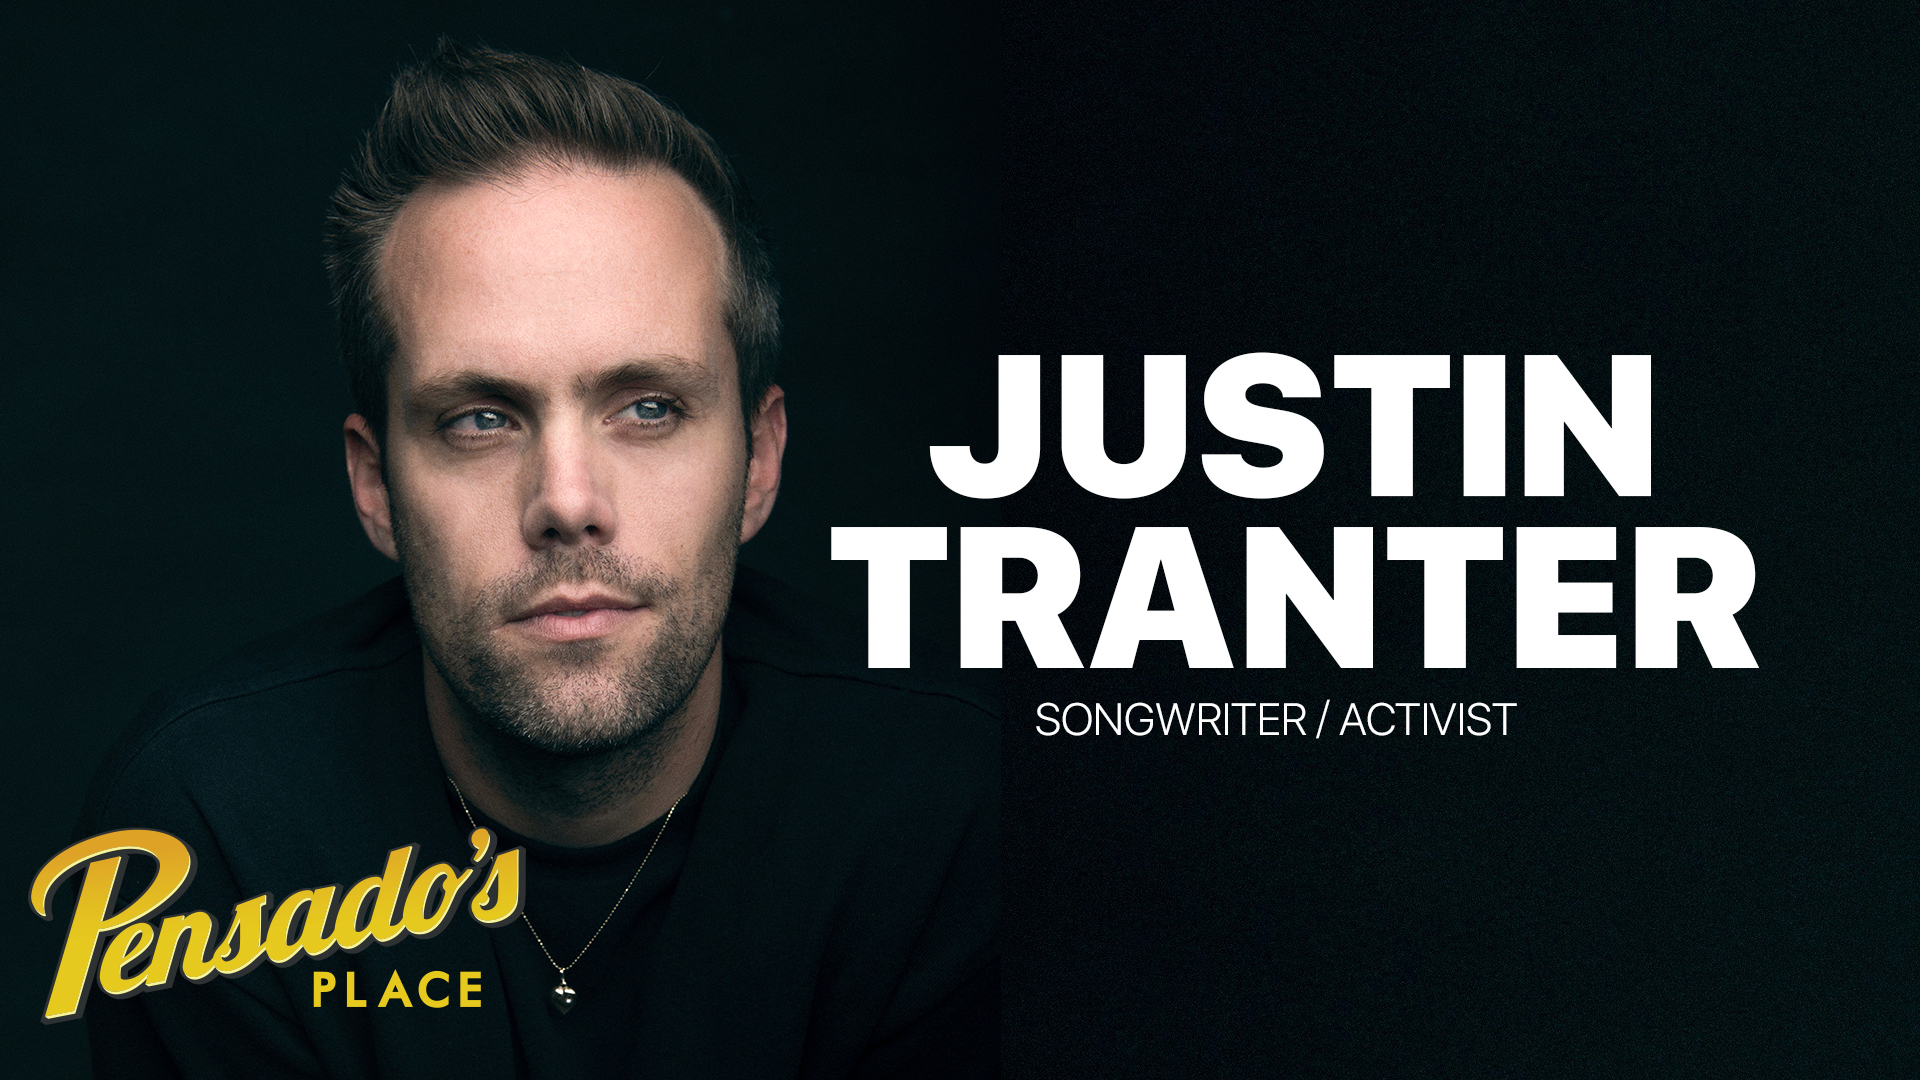 2018 BMI Songwriter of the Year / Activist, Justin Tranter